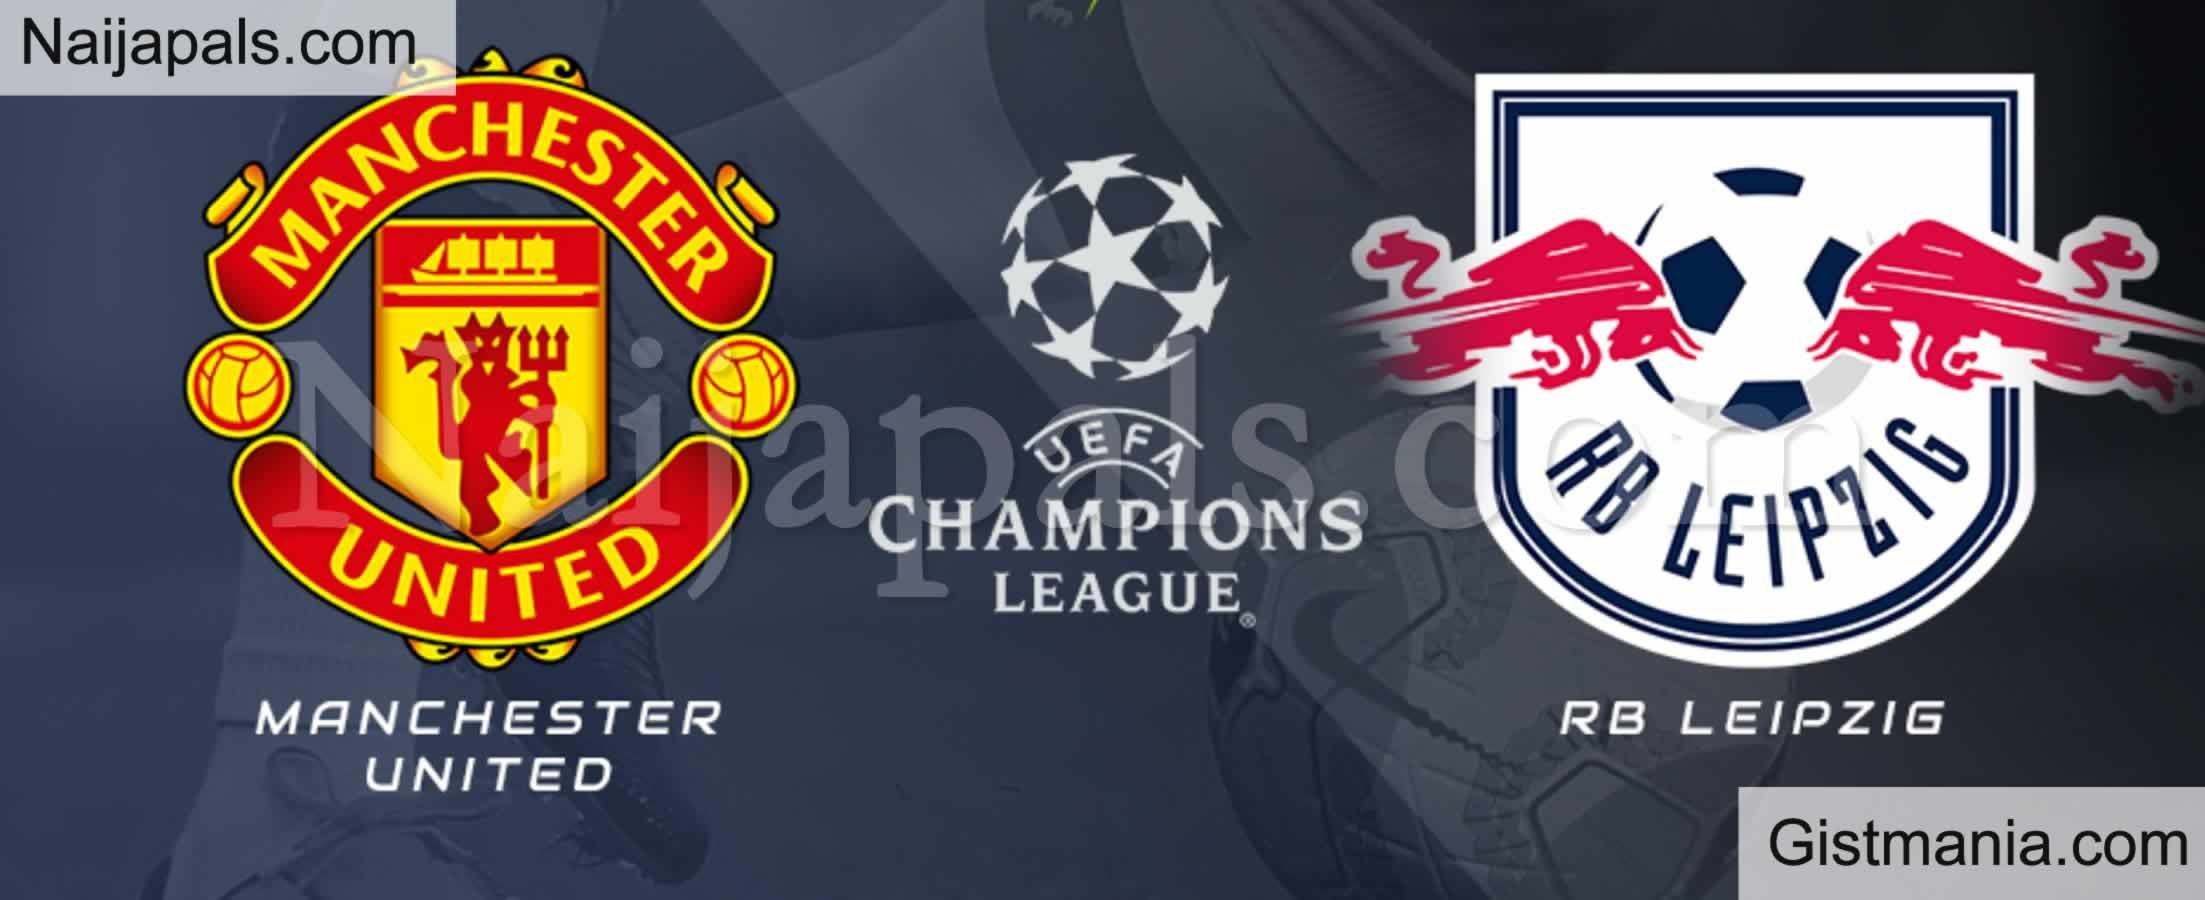 <img alt='.' class='lazyload' data-src='https://img.gistmania.com/emot/soccer.gif' /> <b>Manchester United v RB Leipzig : UEFA Champions League Match, Team News, Goal Scorers and Stats</b>